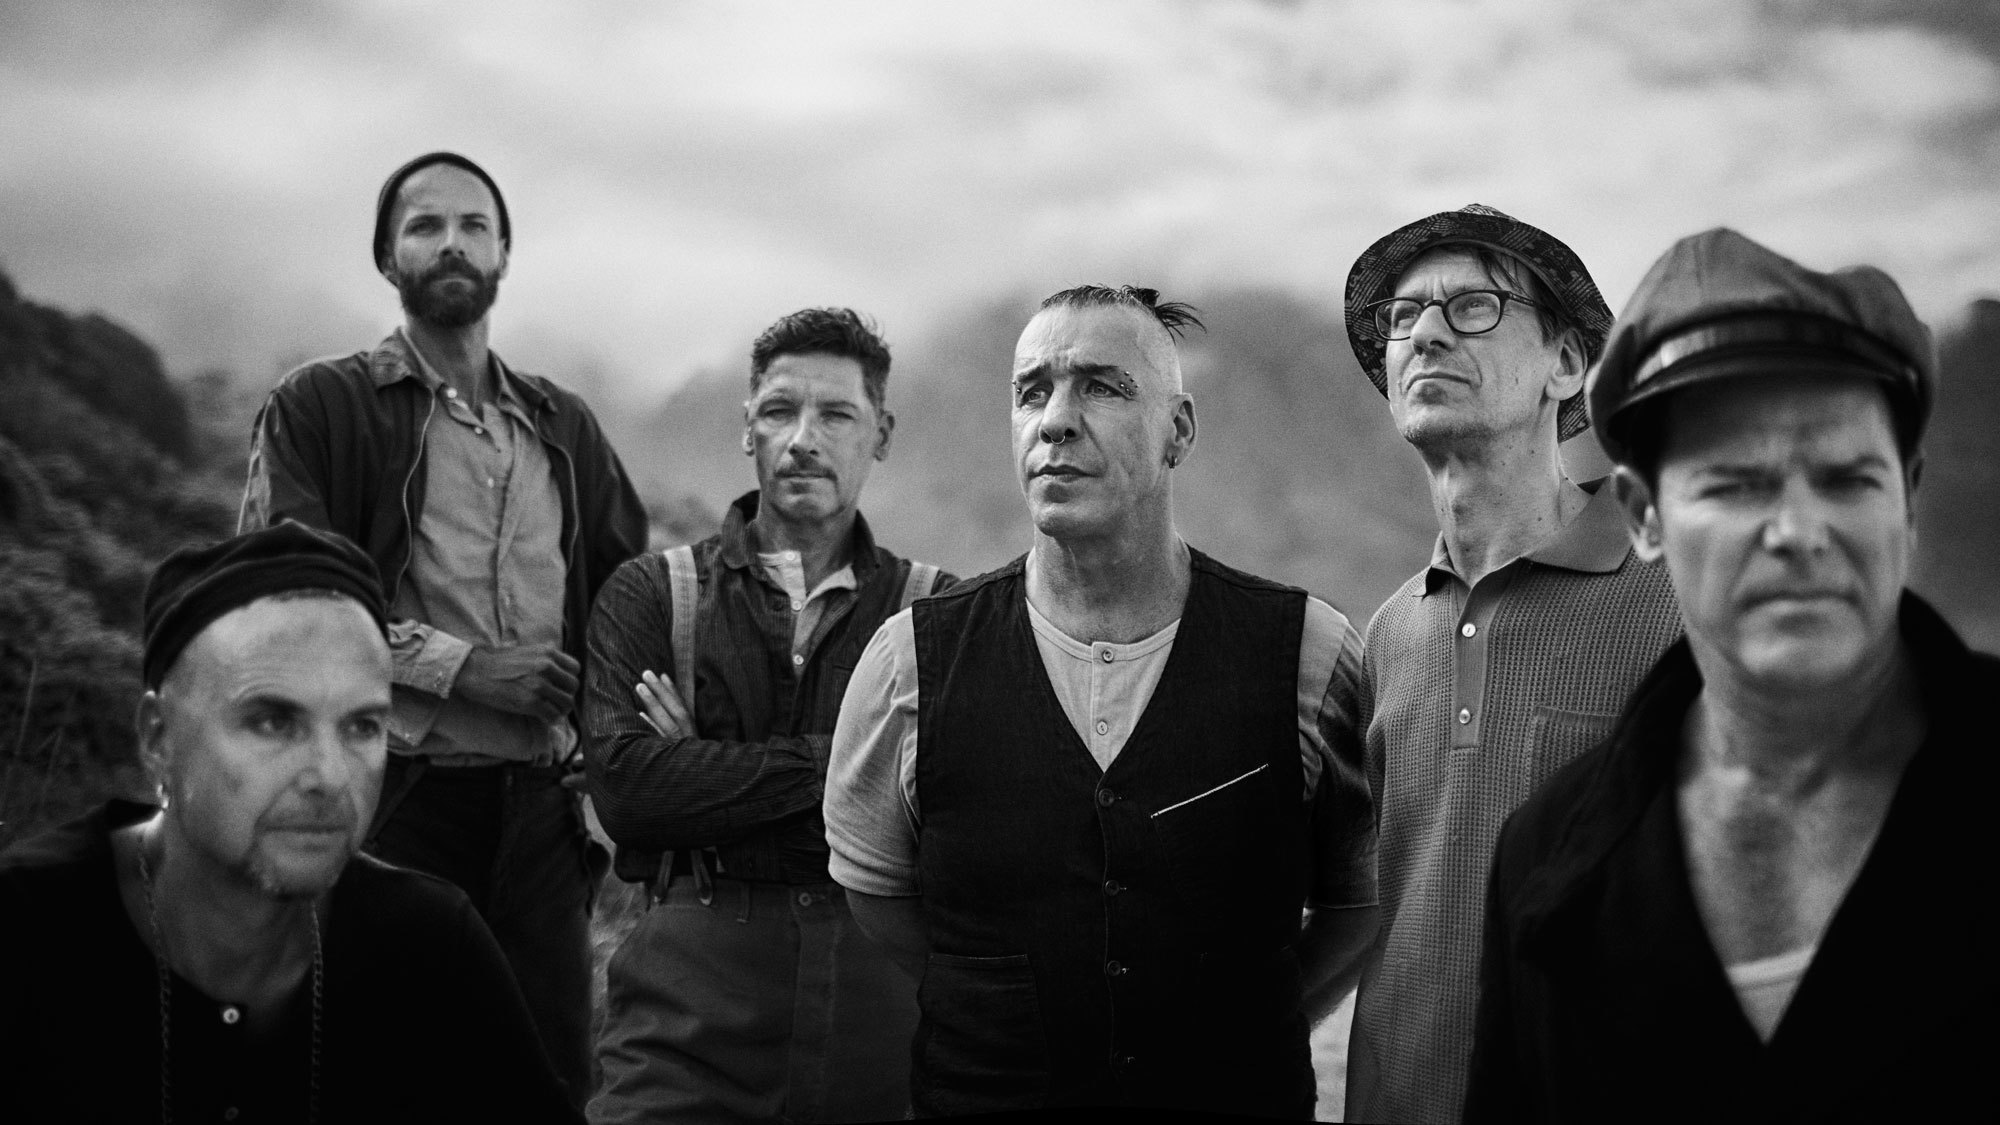 Here Are The English Lyrics To The New Rammstein Song